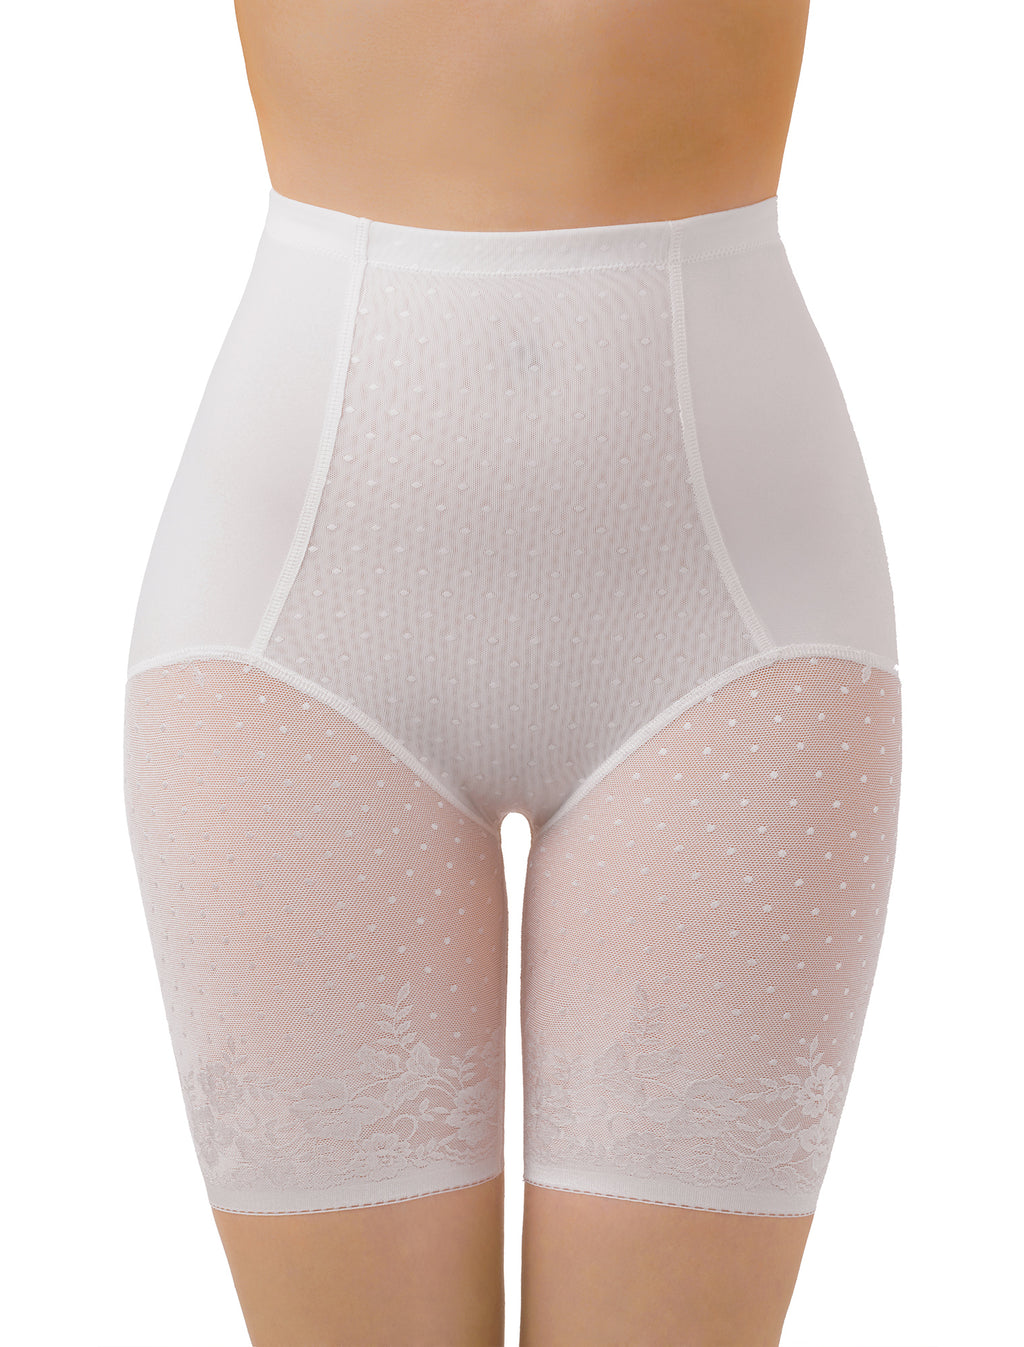 High-waist Slimming Panties